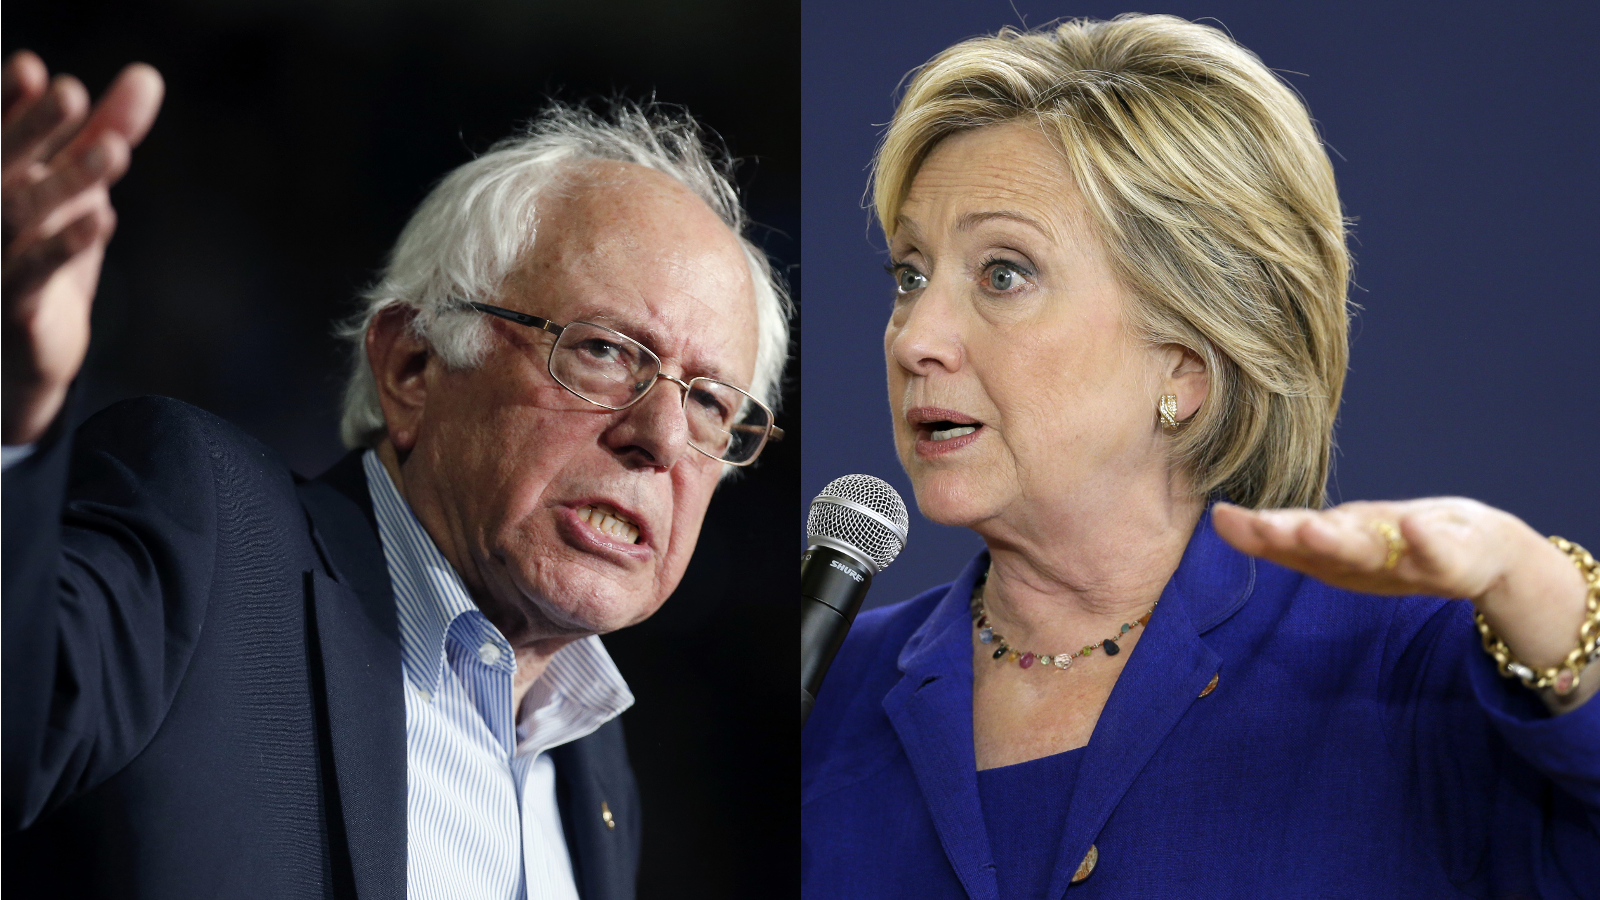 Leading presidential candidates Senator Bernie Sanders and former Secretary of State Hillary Clinton will face off tonight.